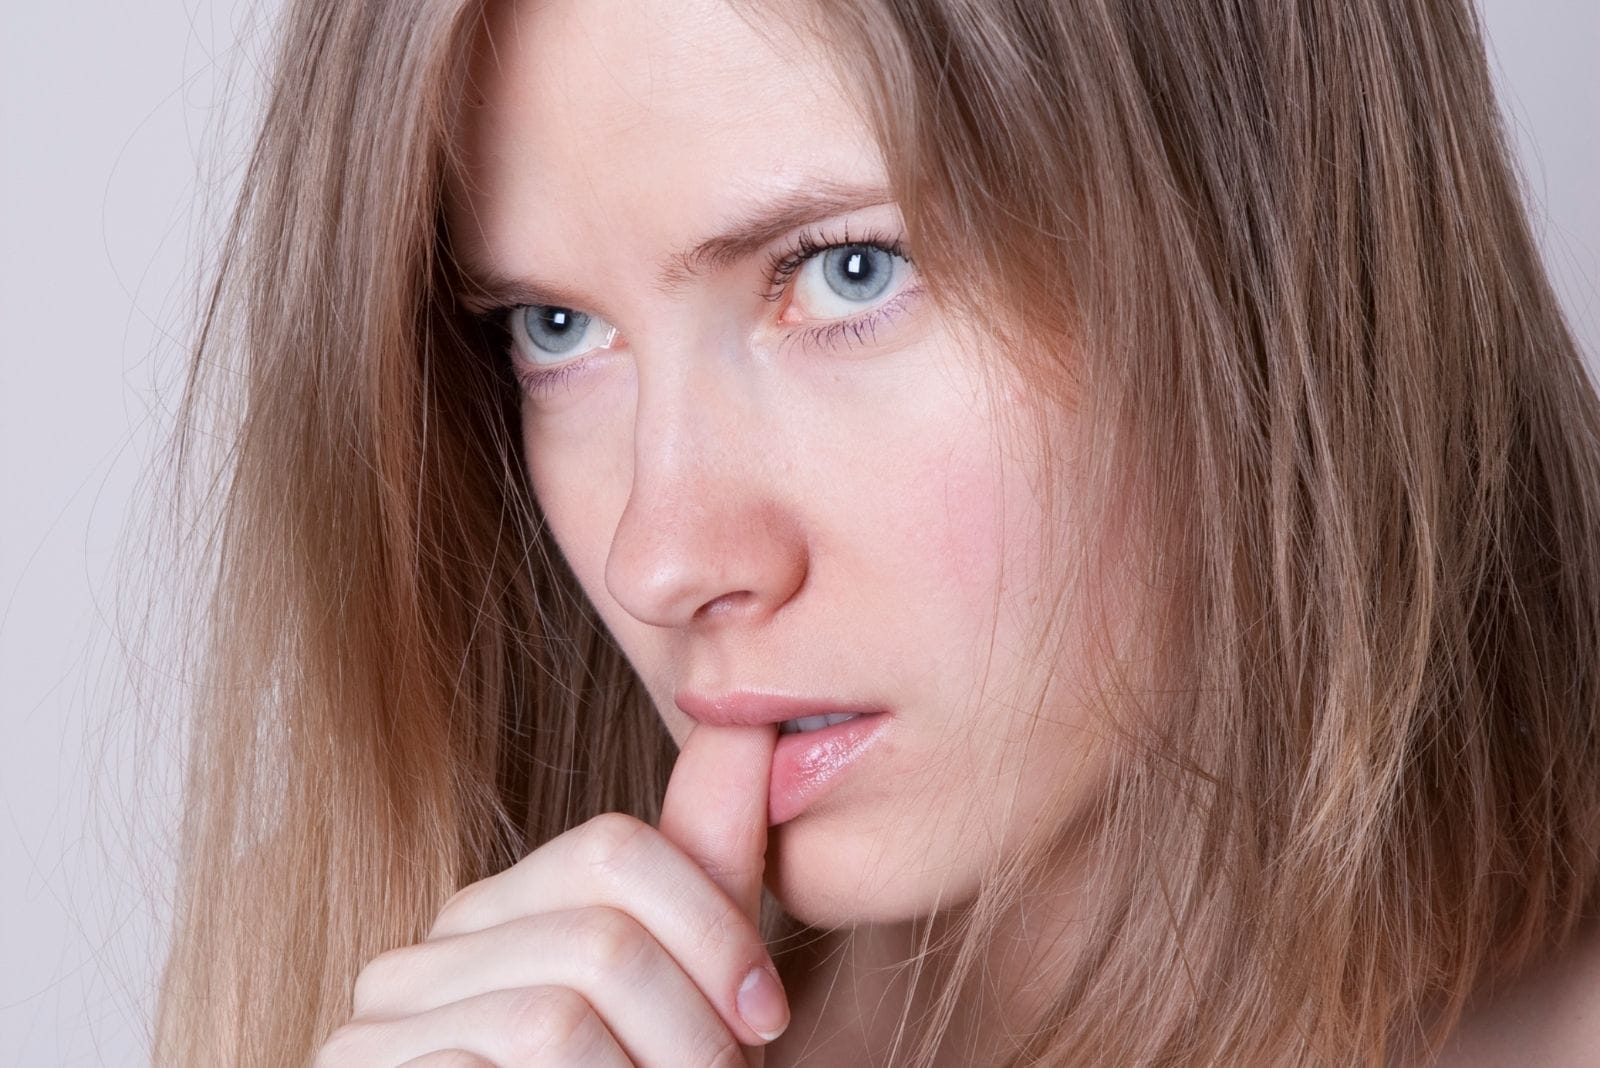 woman with a blue eye looking furiously biting her thumb